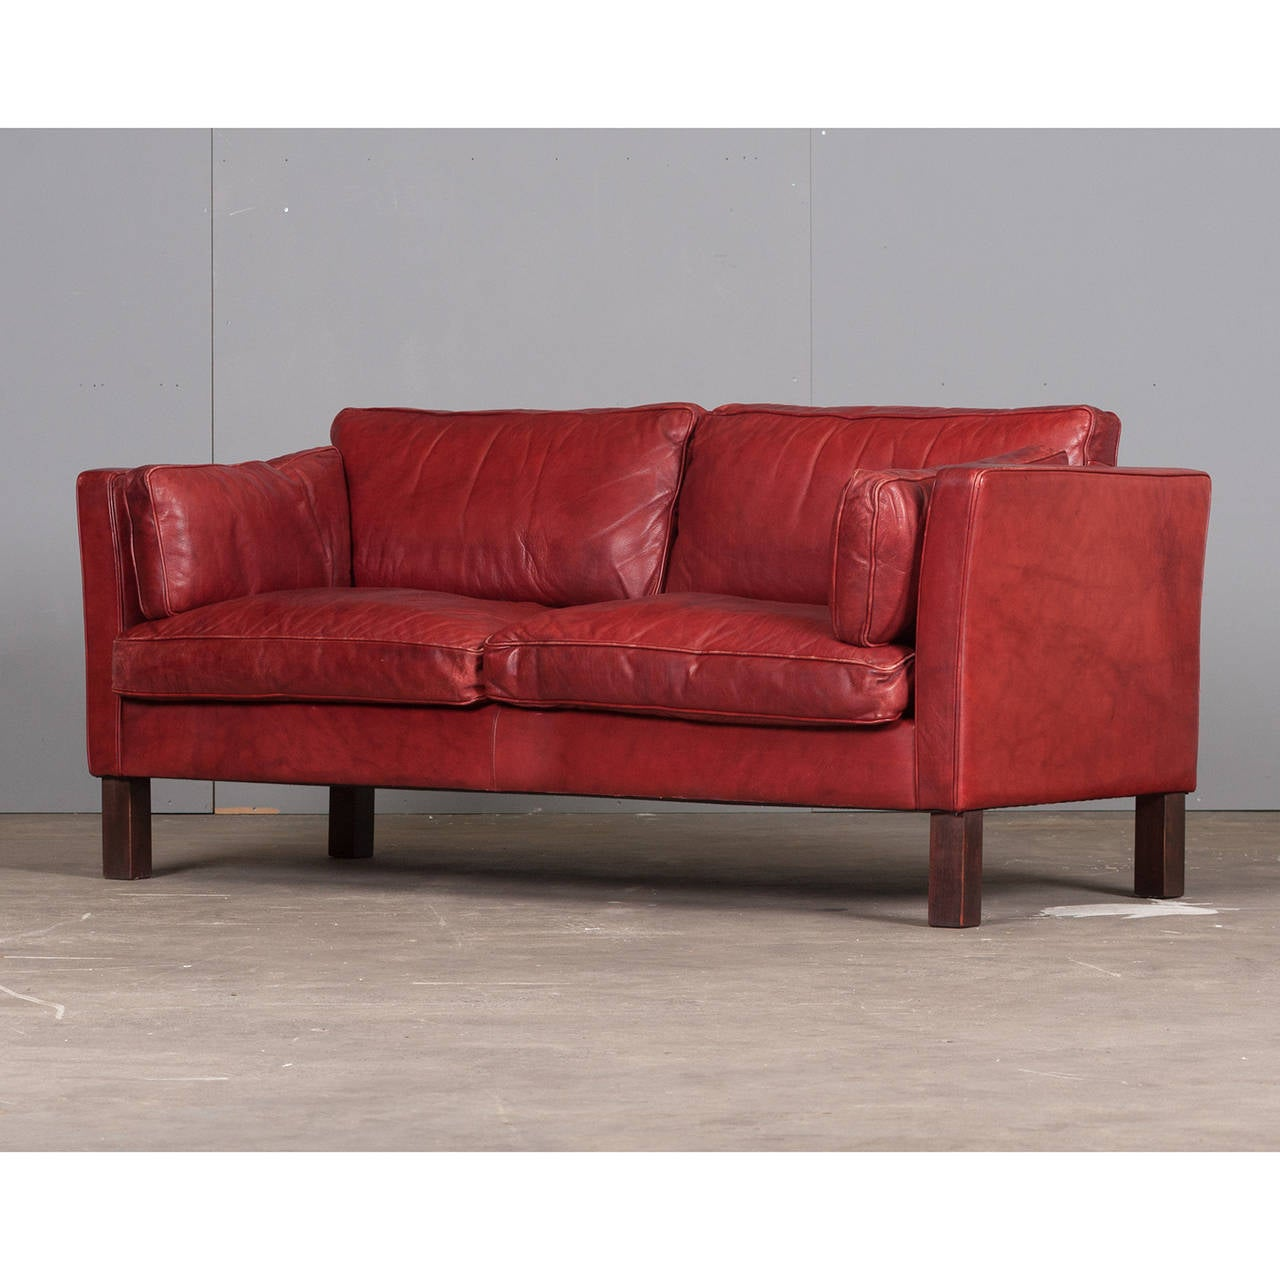 cherry red leather sofa friheten corner bed with storage skiftebo beige danish two seater in by arne